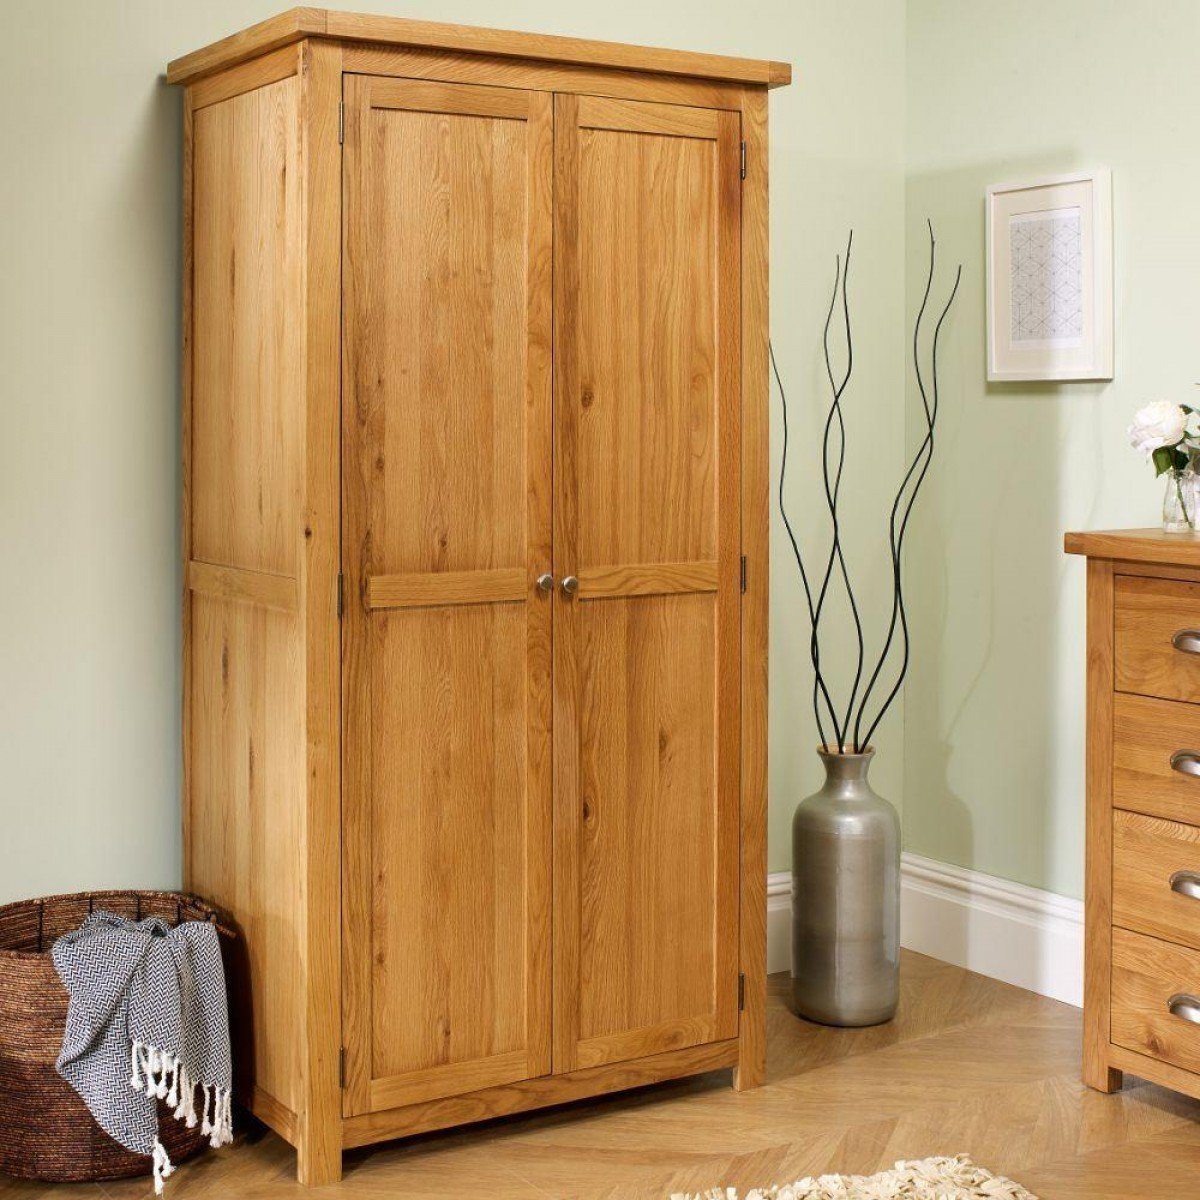 Woburn Oak Wooden 2 Door Wardrobe